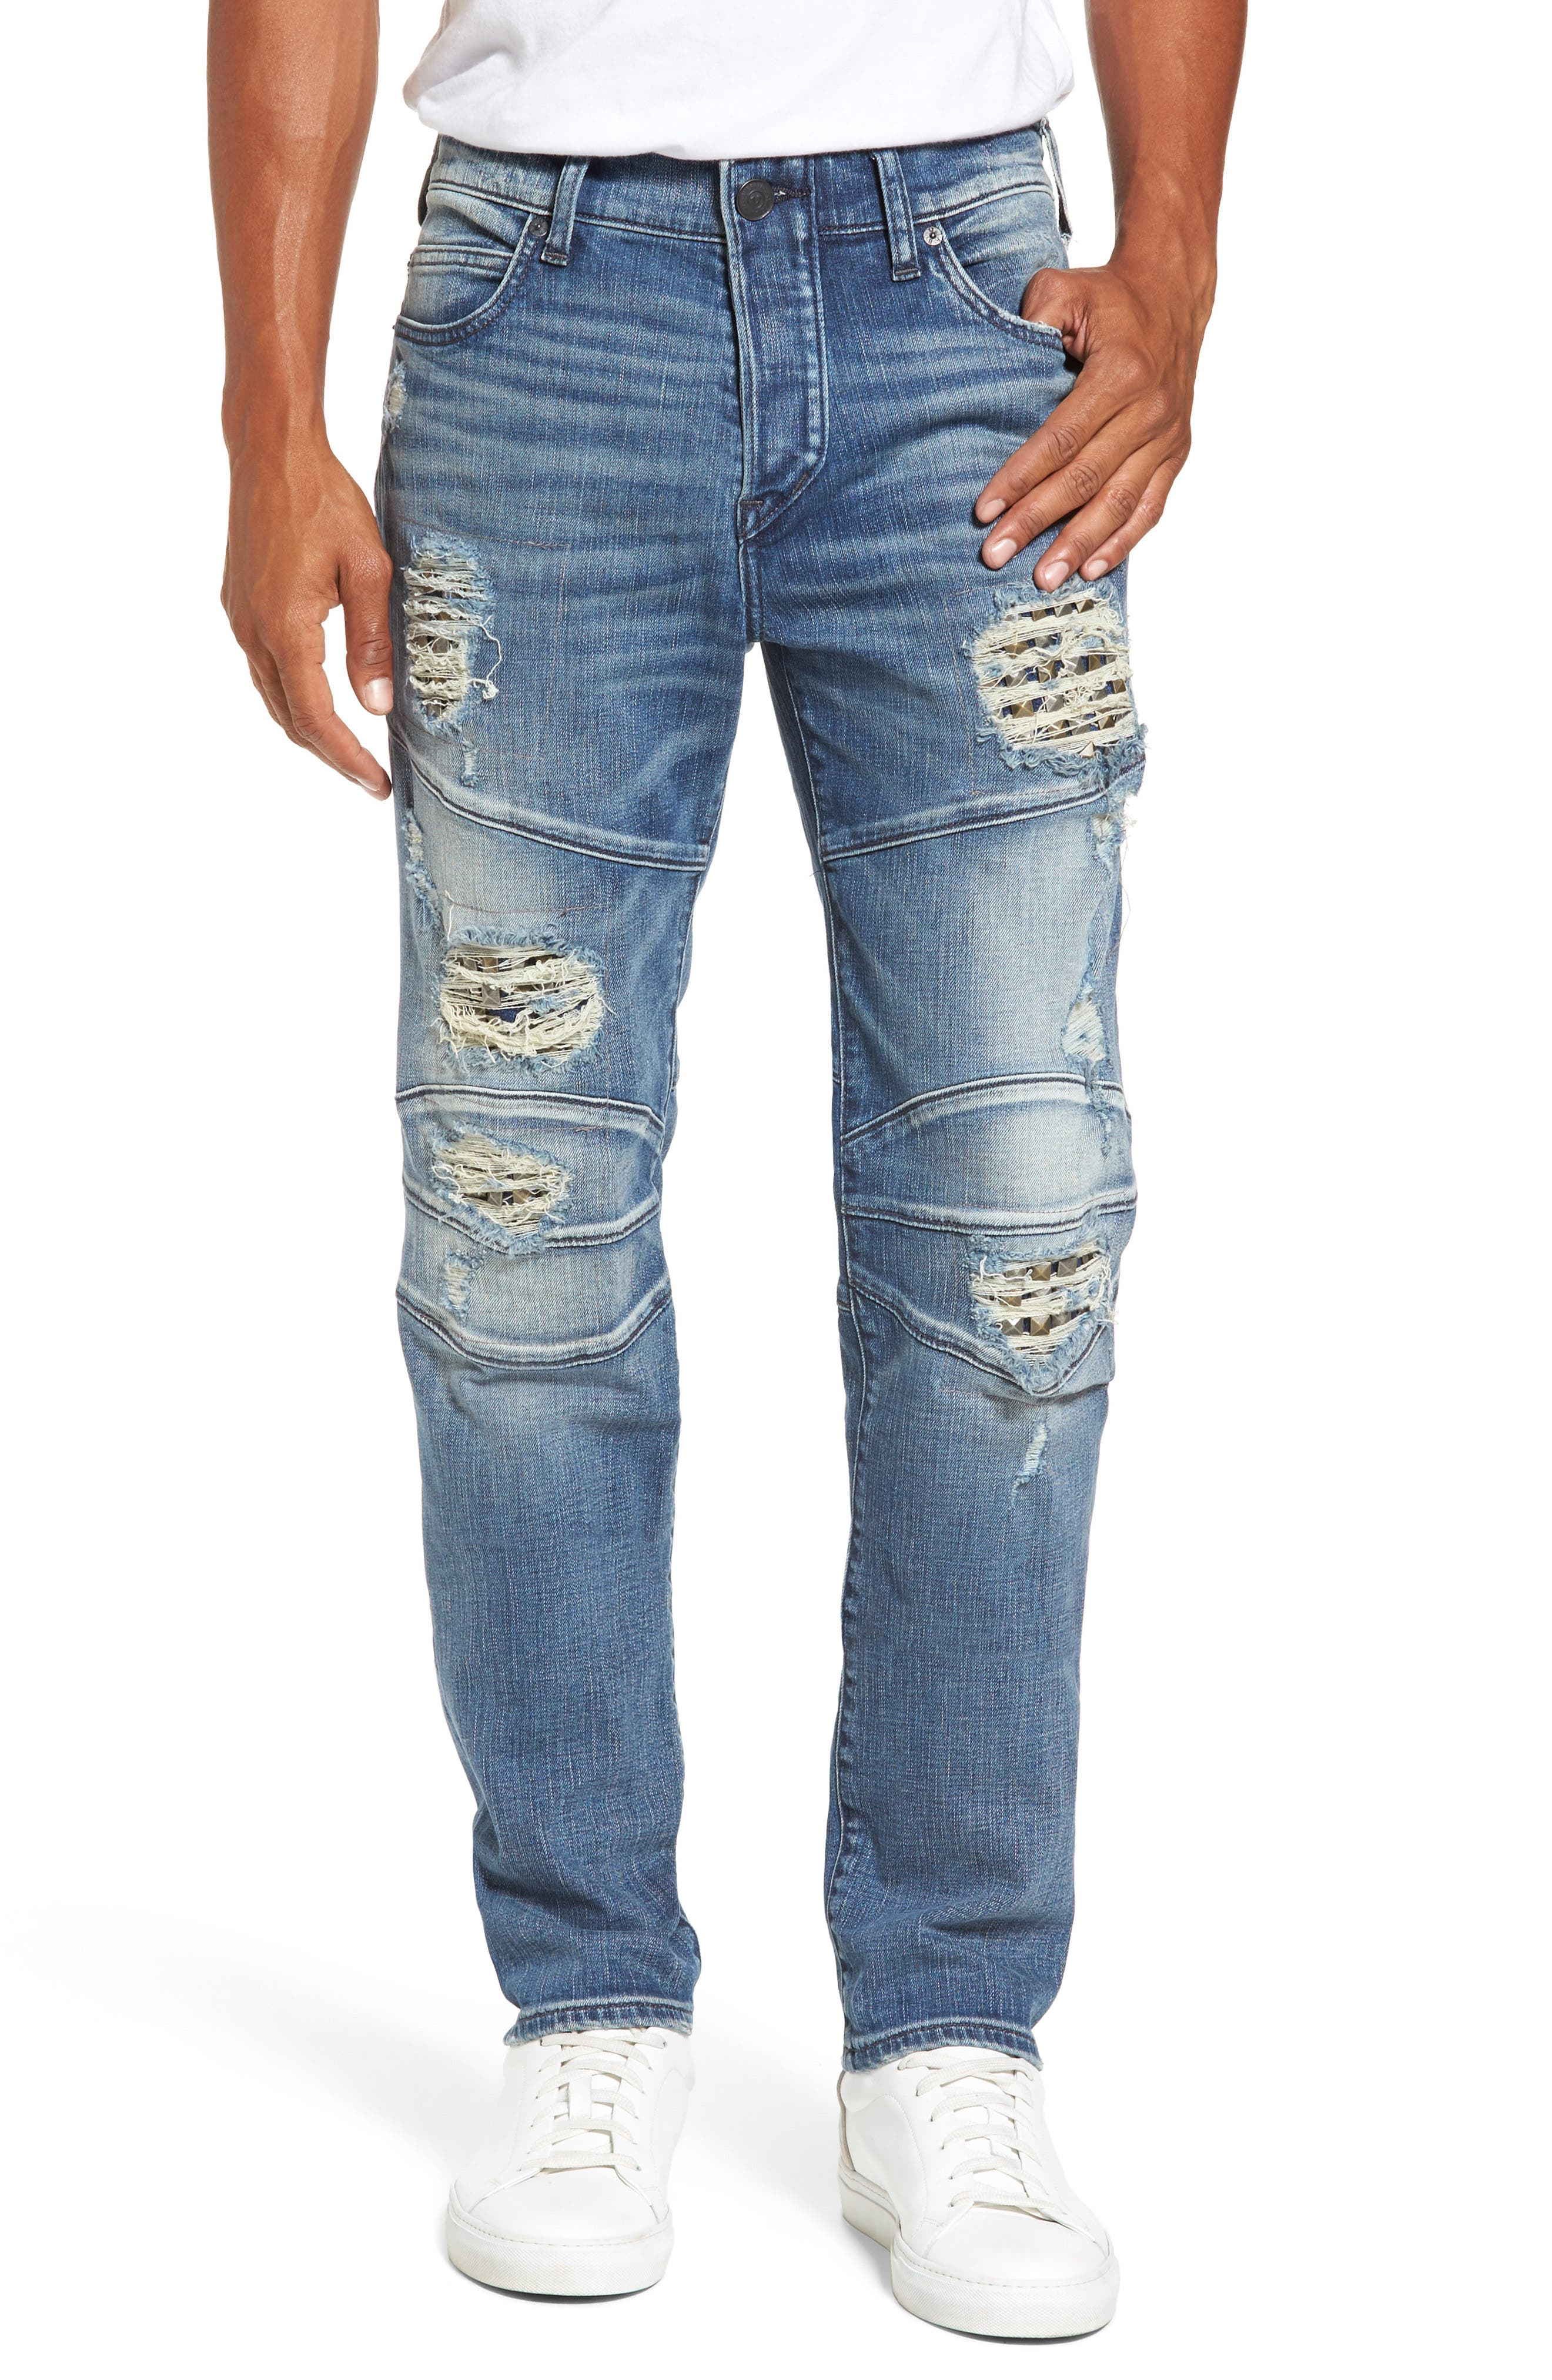 Rocco Skinny Fit Jeans,                             Main thumbnail 1, color,                             INDIGO CLUTCH